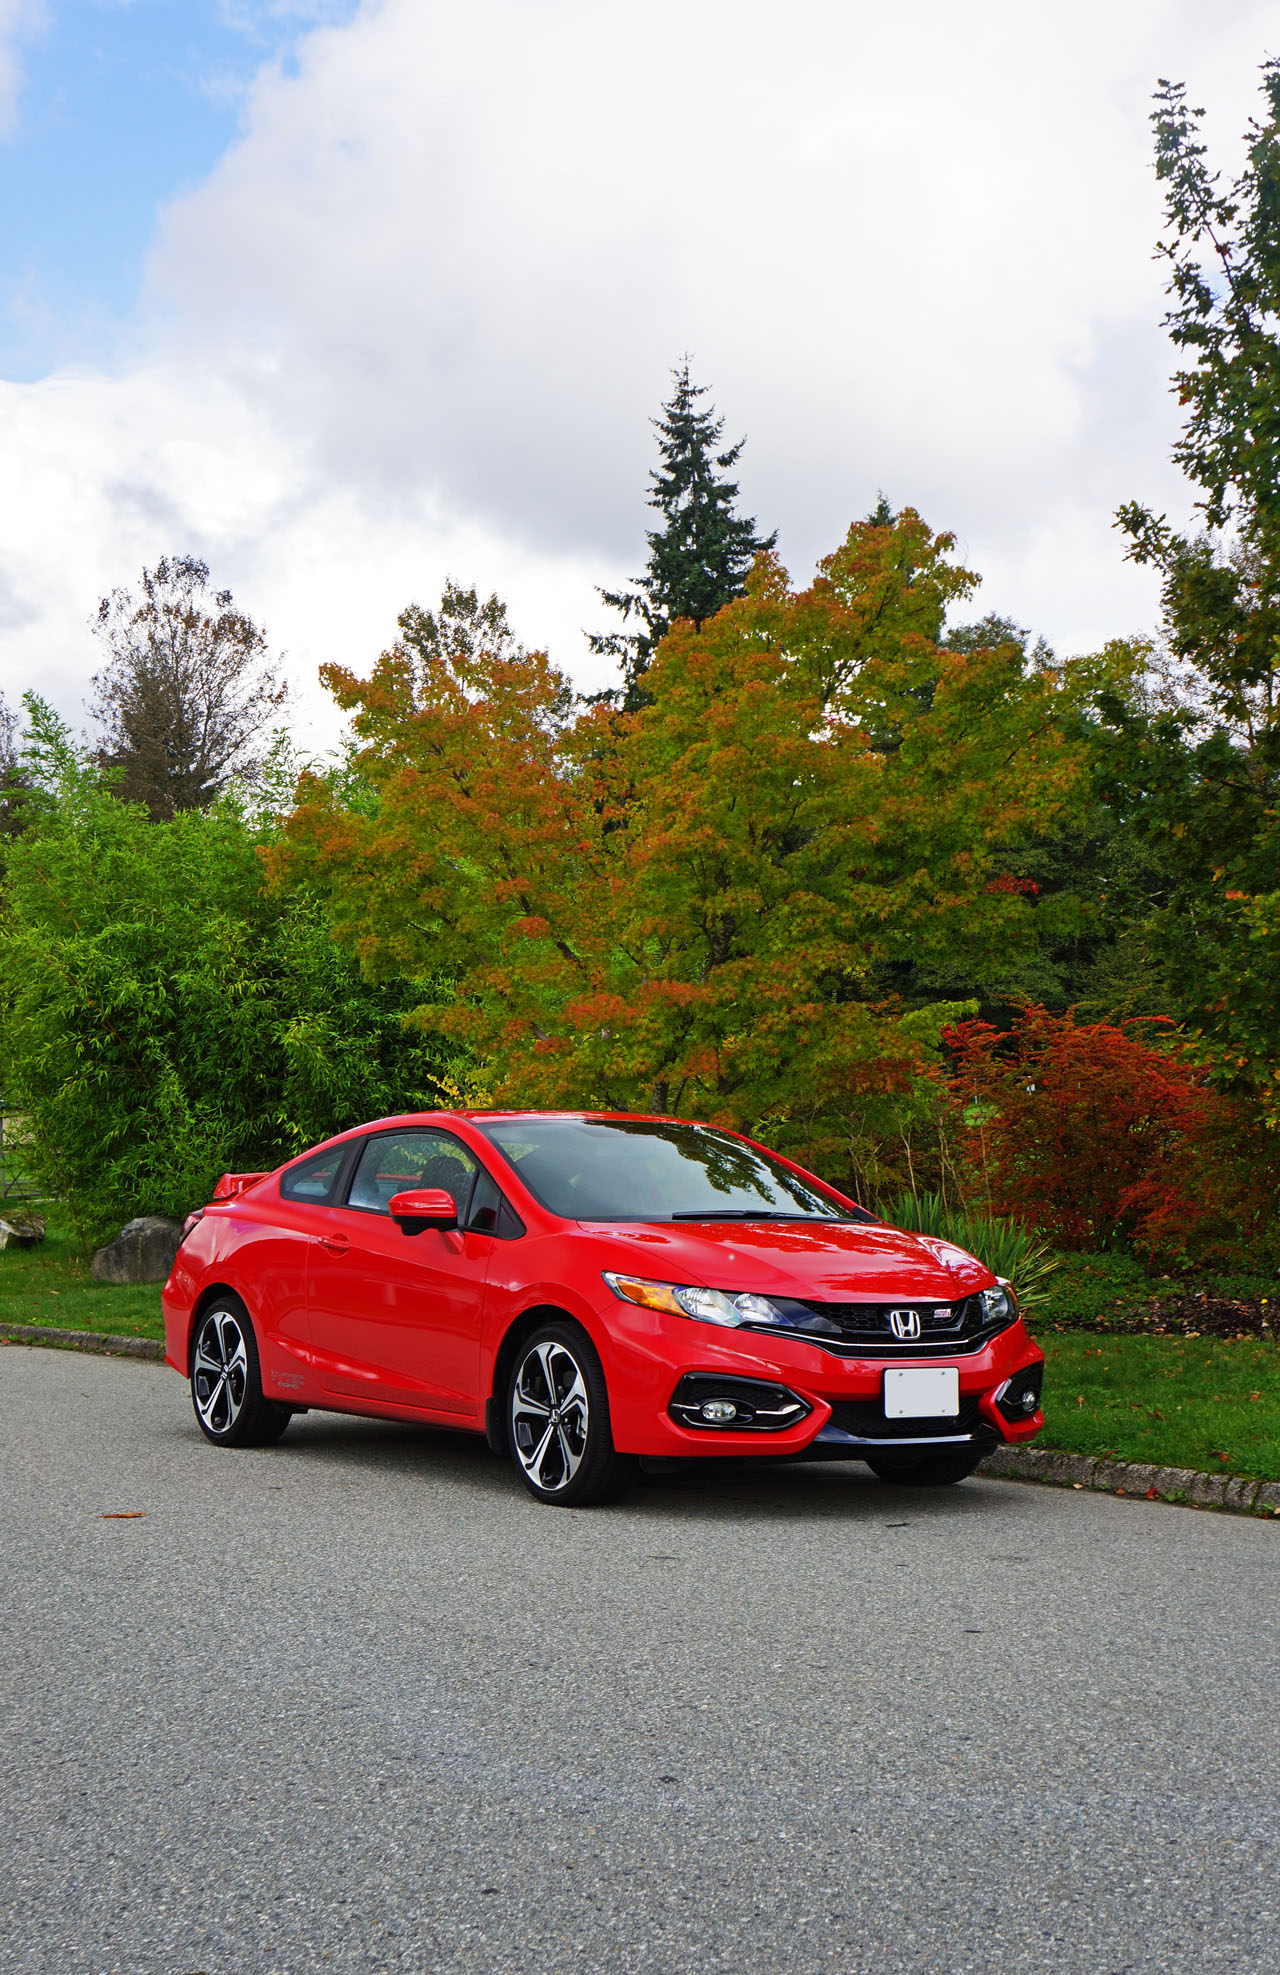 Image Result For Honda Civic Insurance Cost Canada